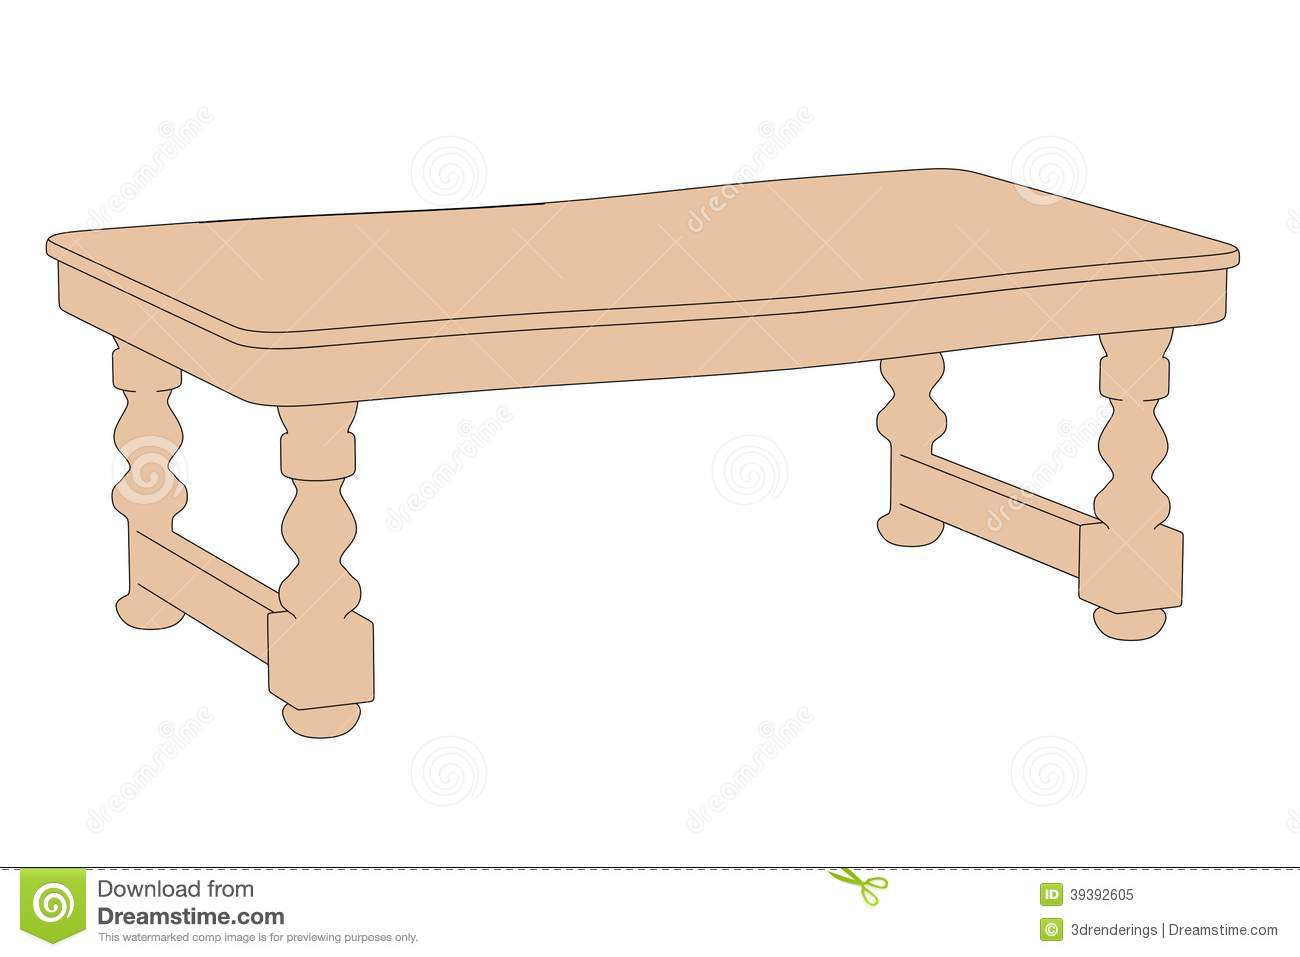 Cartoon kitchen table - Royalty Free Stock Photo Image Old Kitchen Table Cartoon Image39392605 Jpg 1300x957 Cartoon Kitchen Table